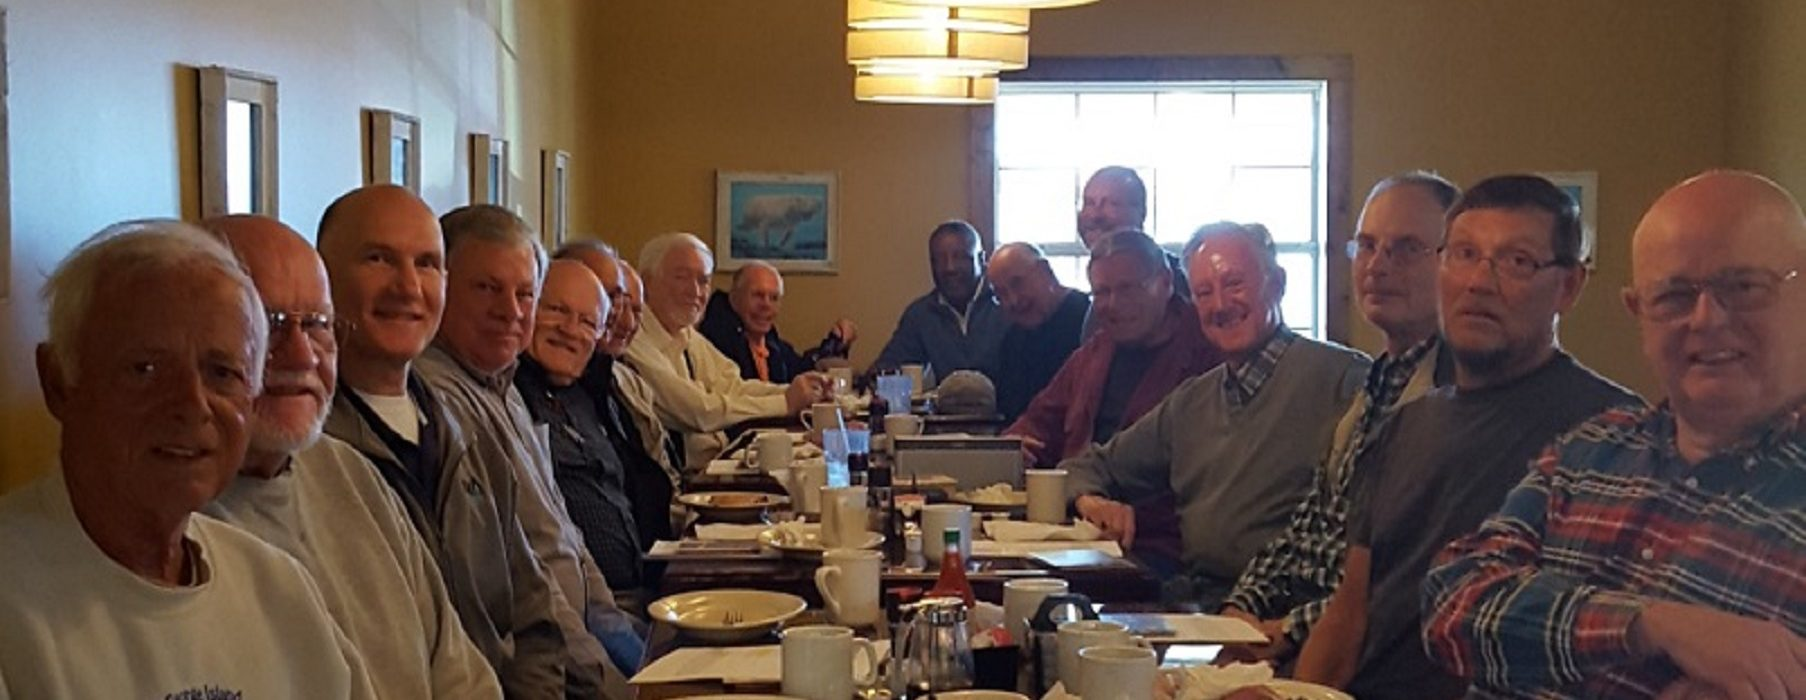 Men's Devotional Bible Study Breakfast Every Wednesday Morning at 8:15